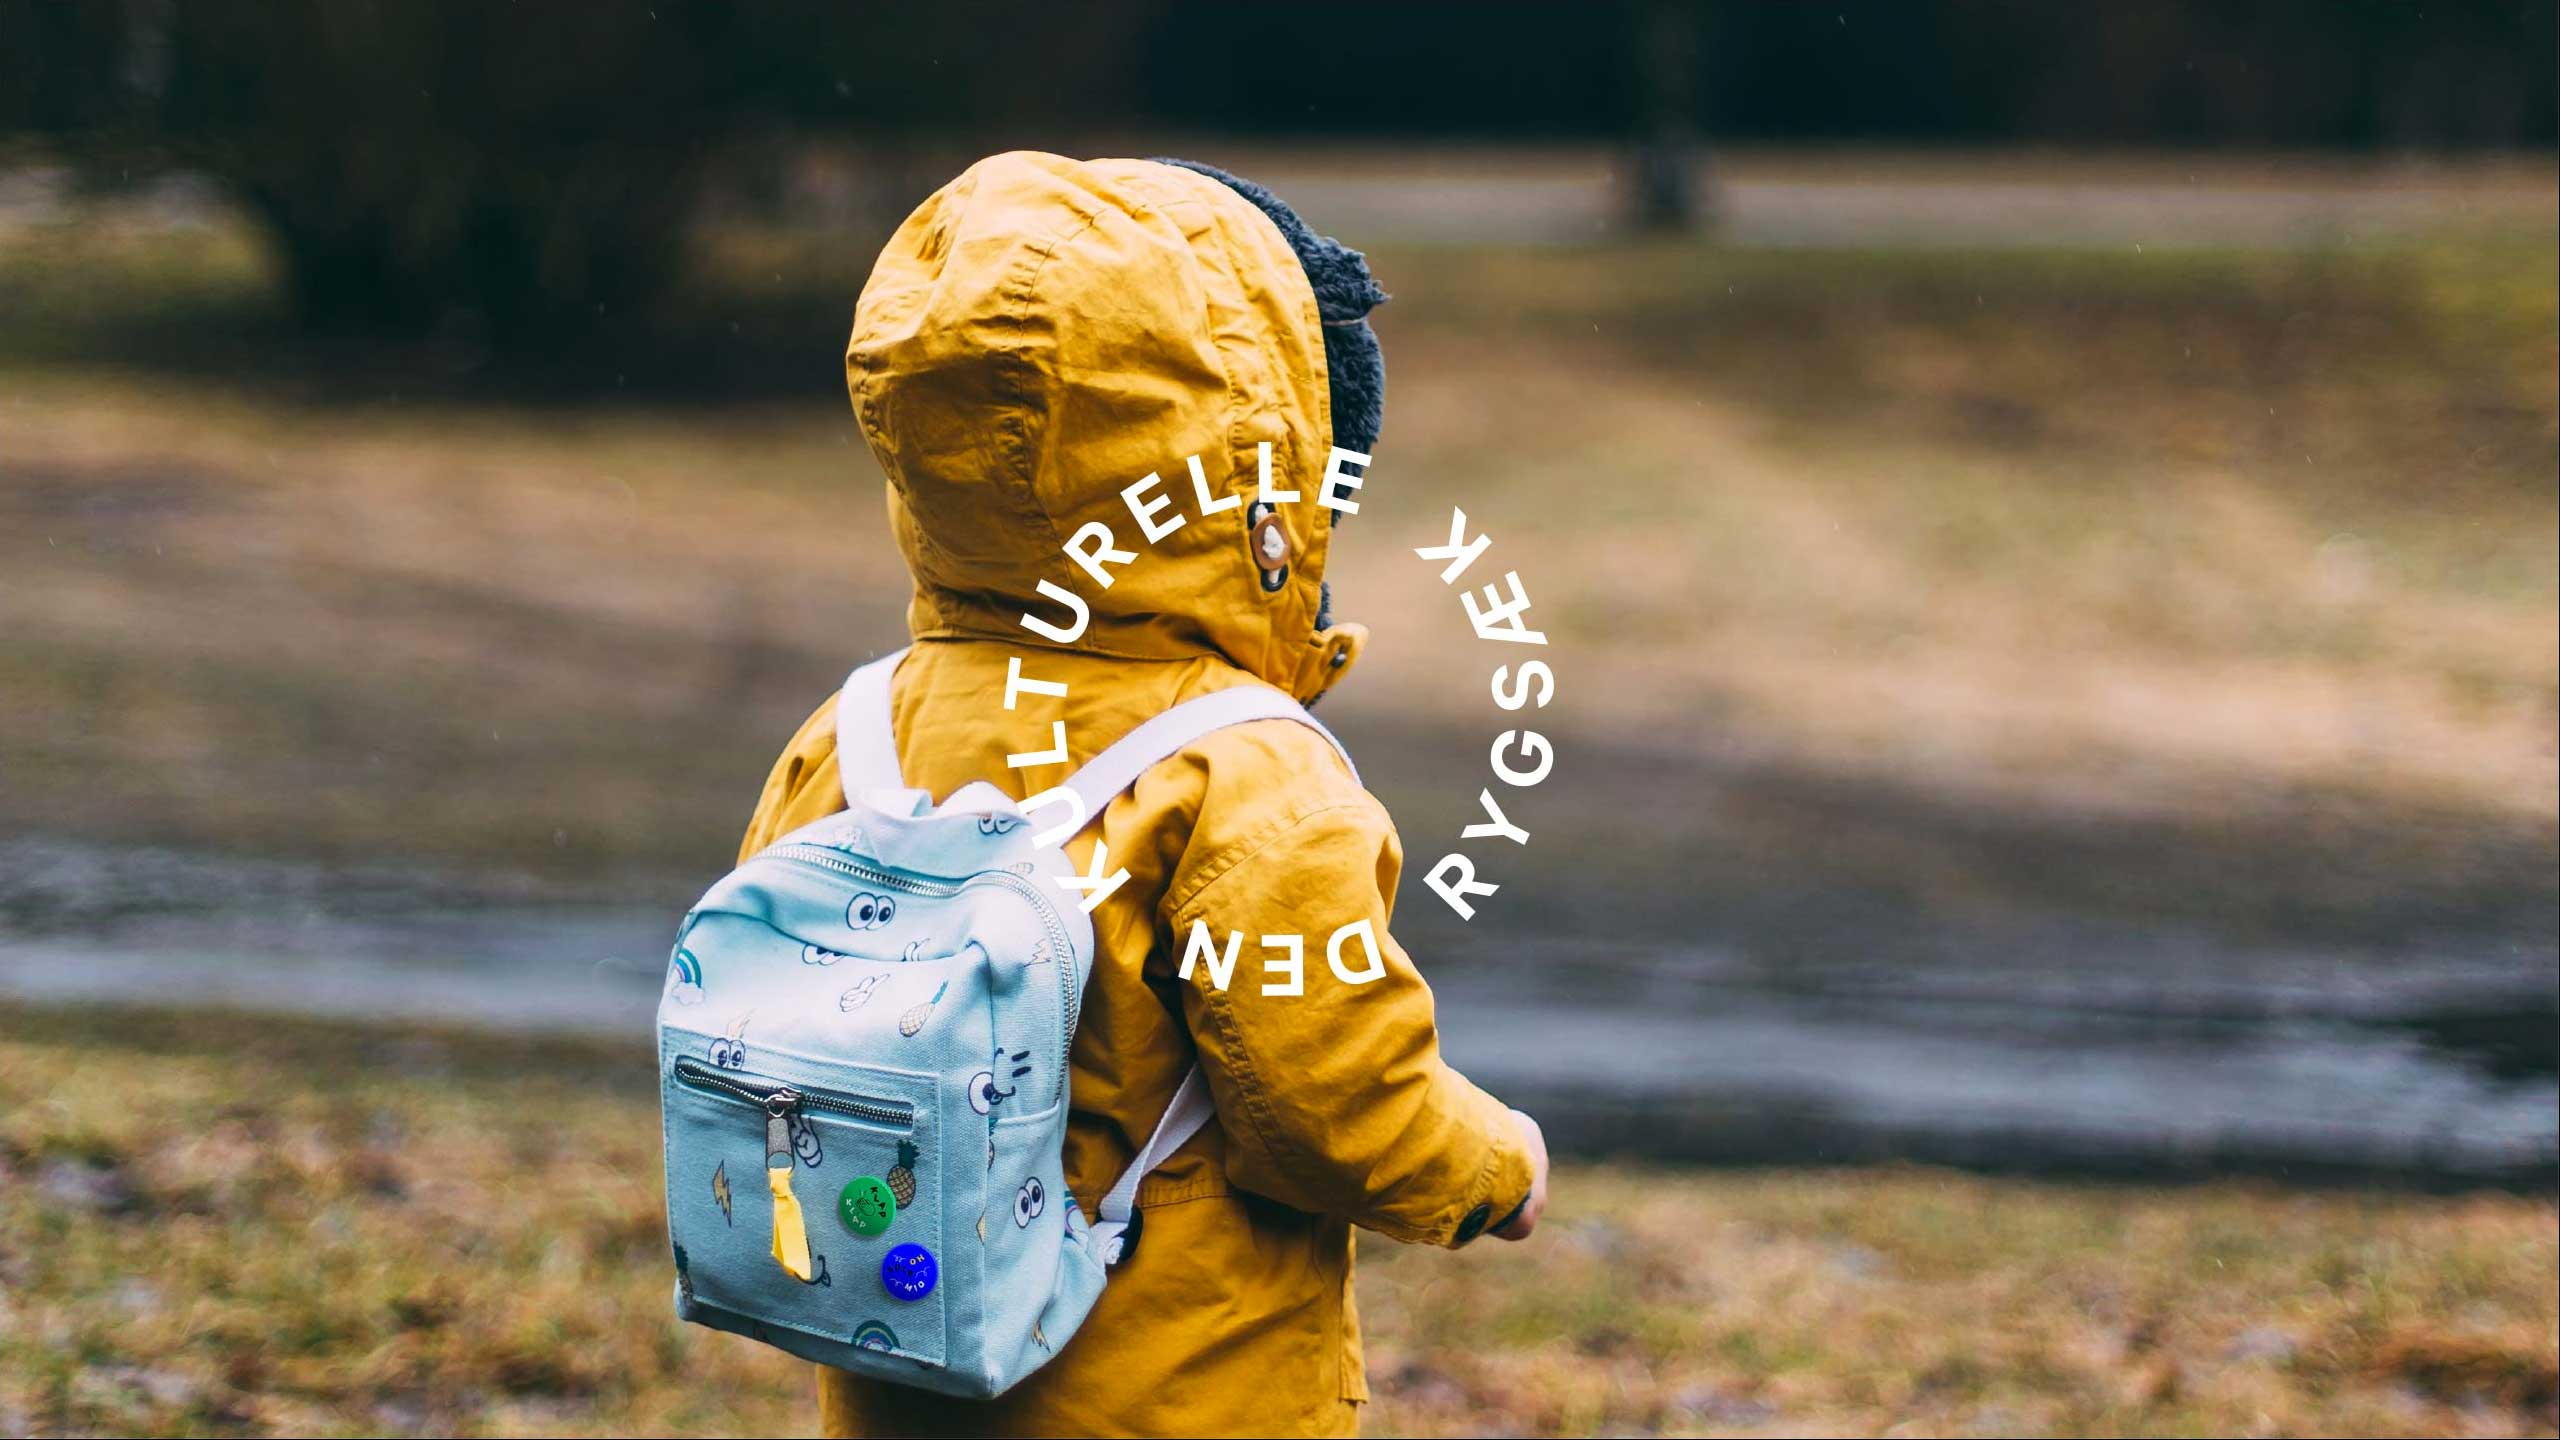 The Cultural Backpack